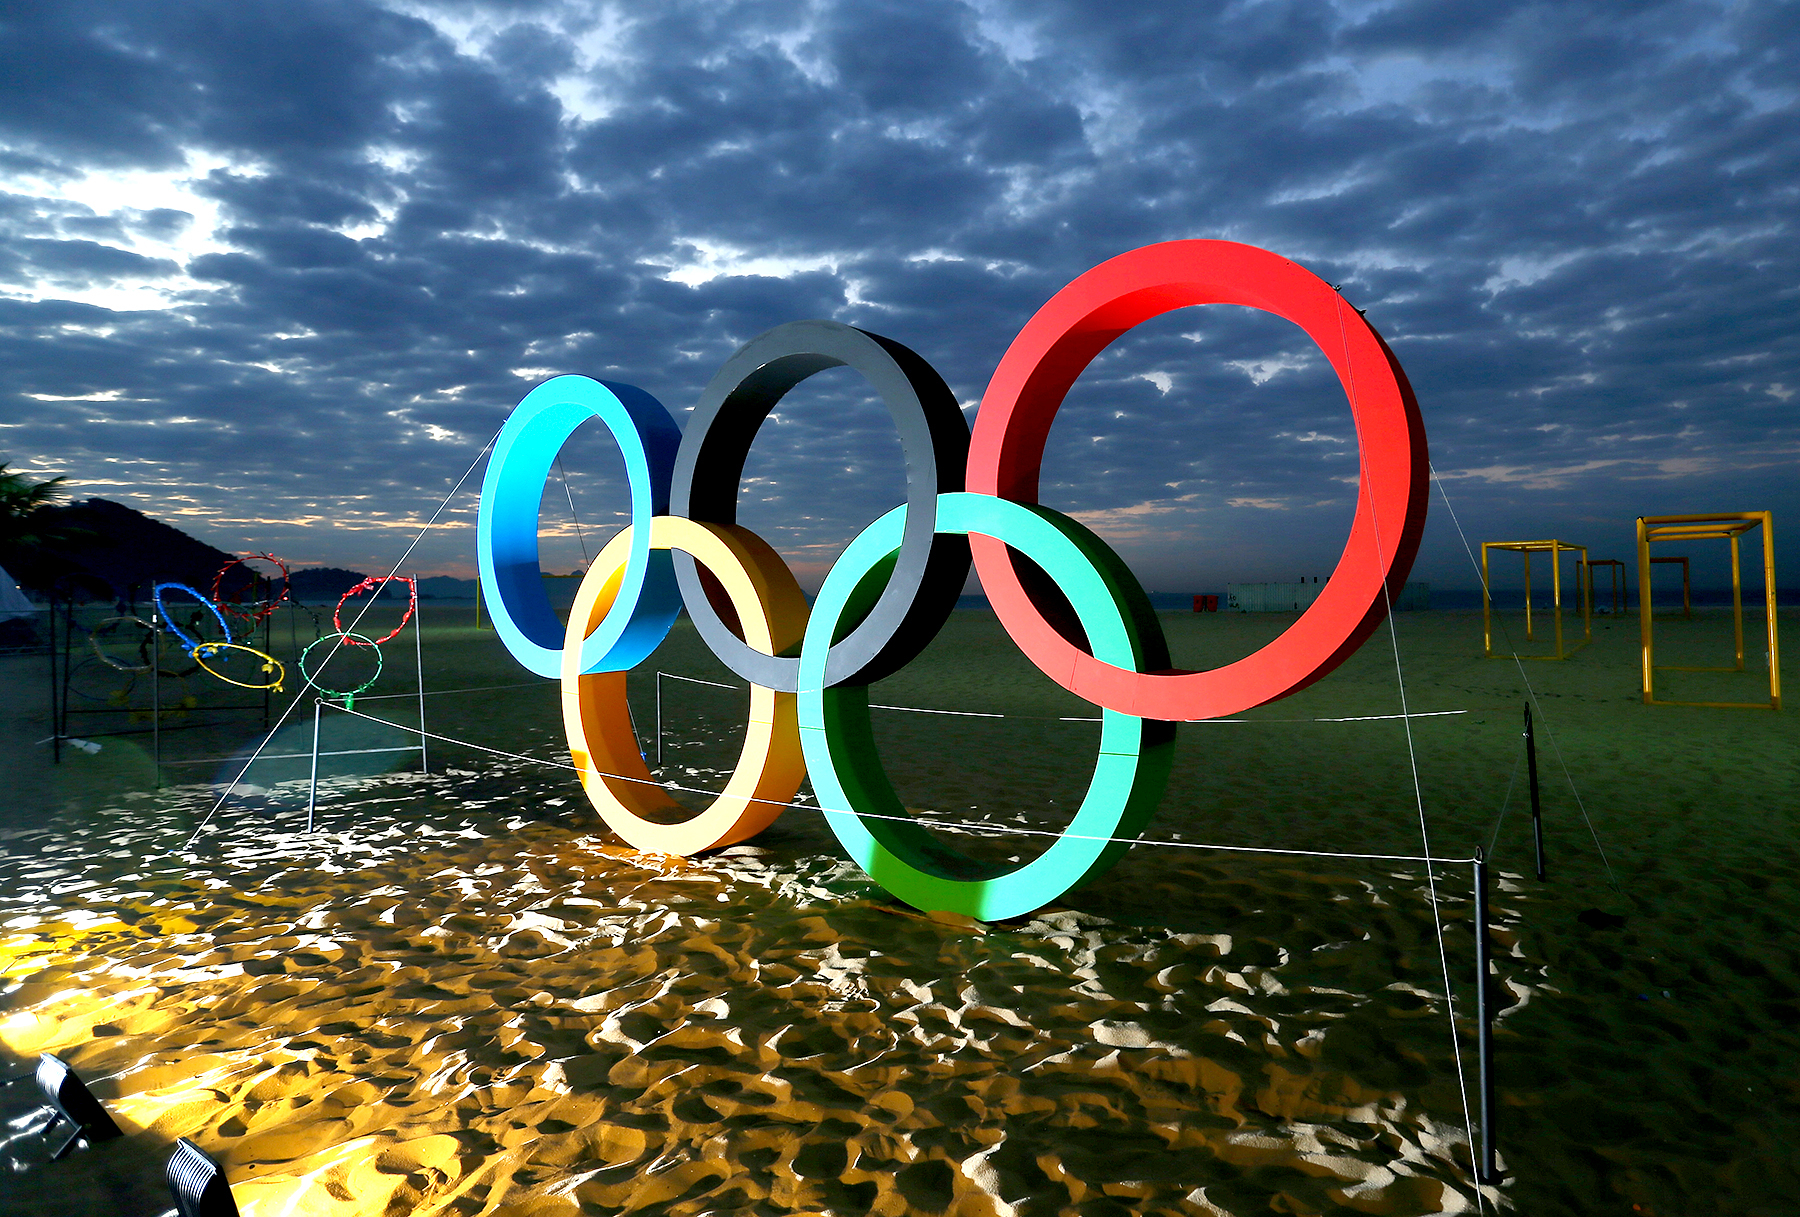 The Olympic Rings are displayed at the Copacabana beach ahead of the Rio 2016 Olympic Games on August 2, 2016 in Rio de Janeiro, Brazil.